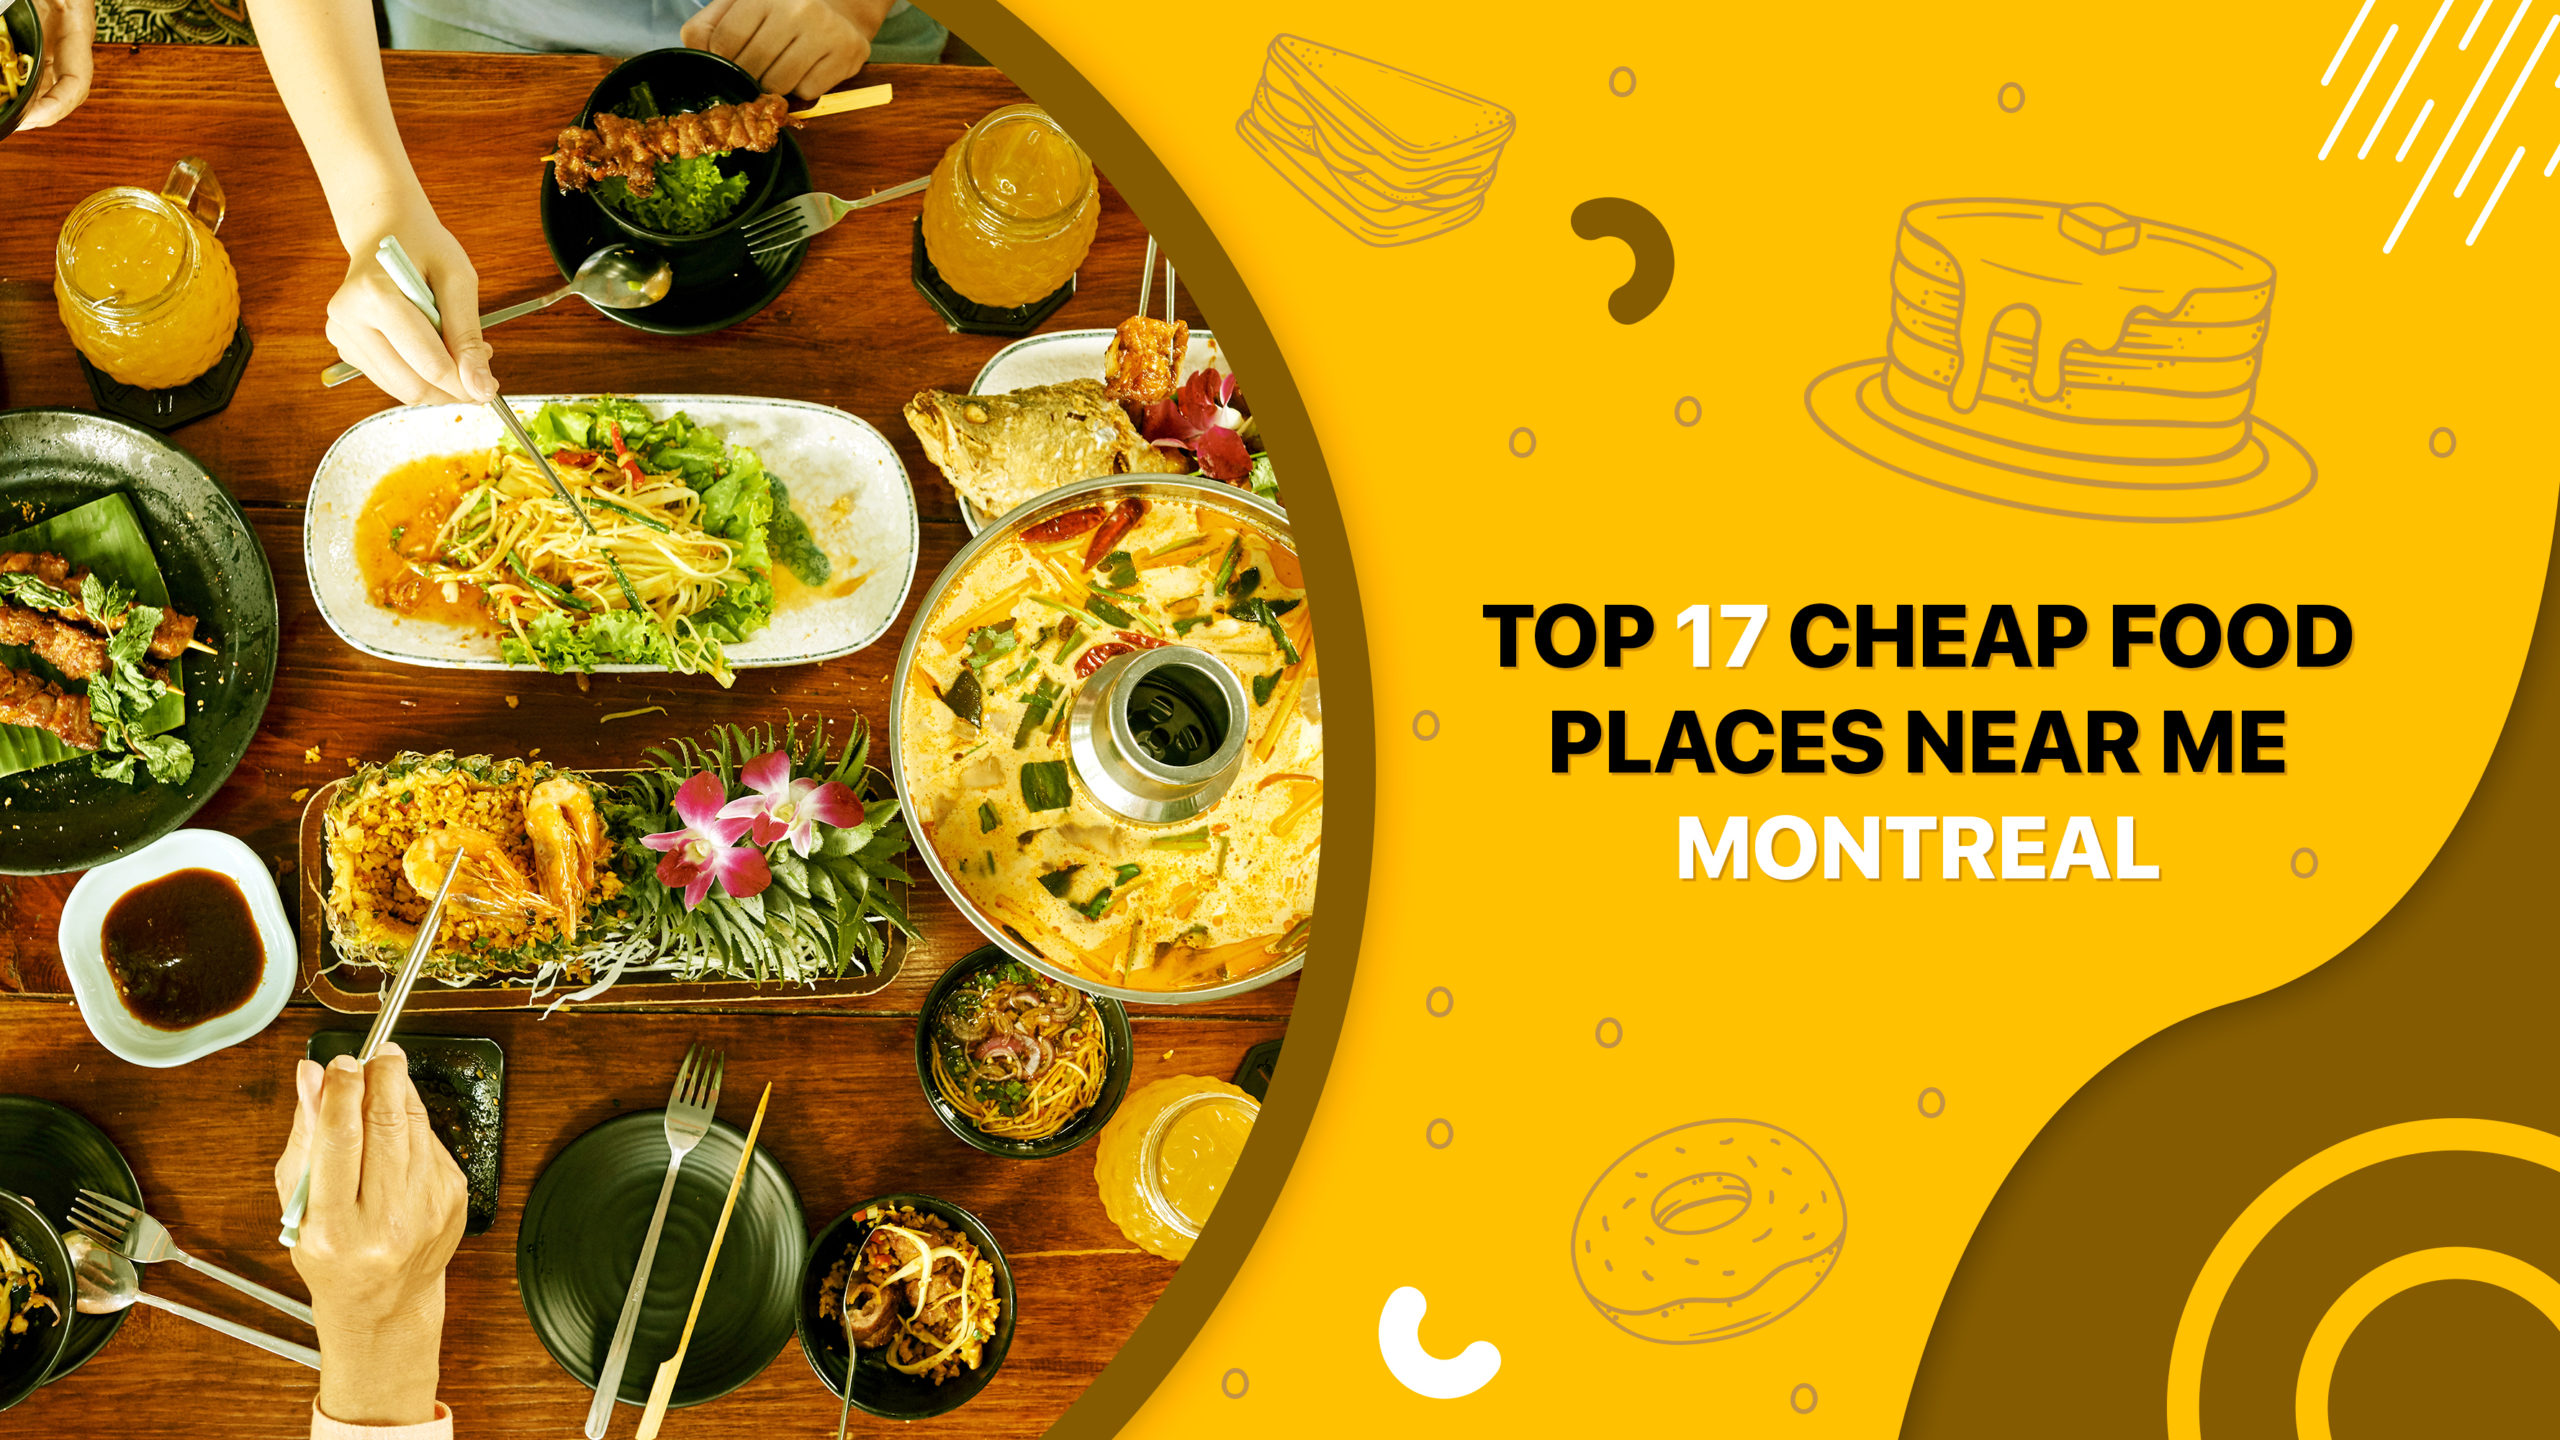 Top 17 Cheap Food Places Near Me, Montreal